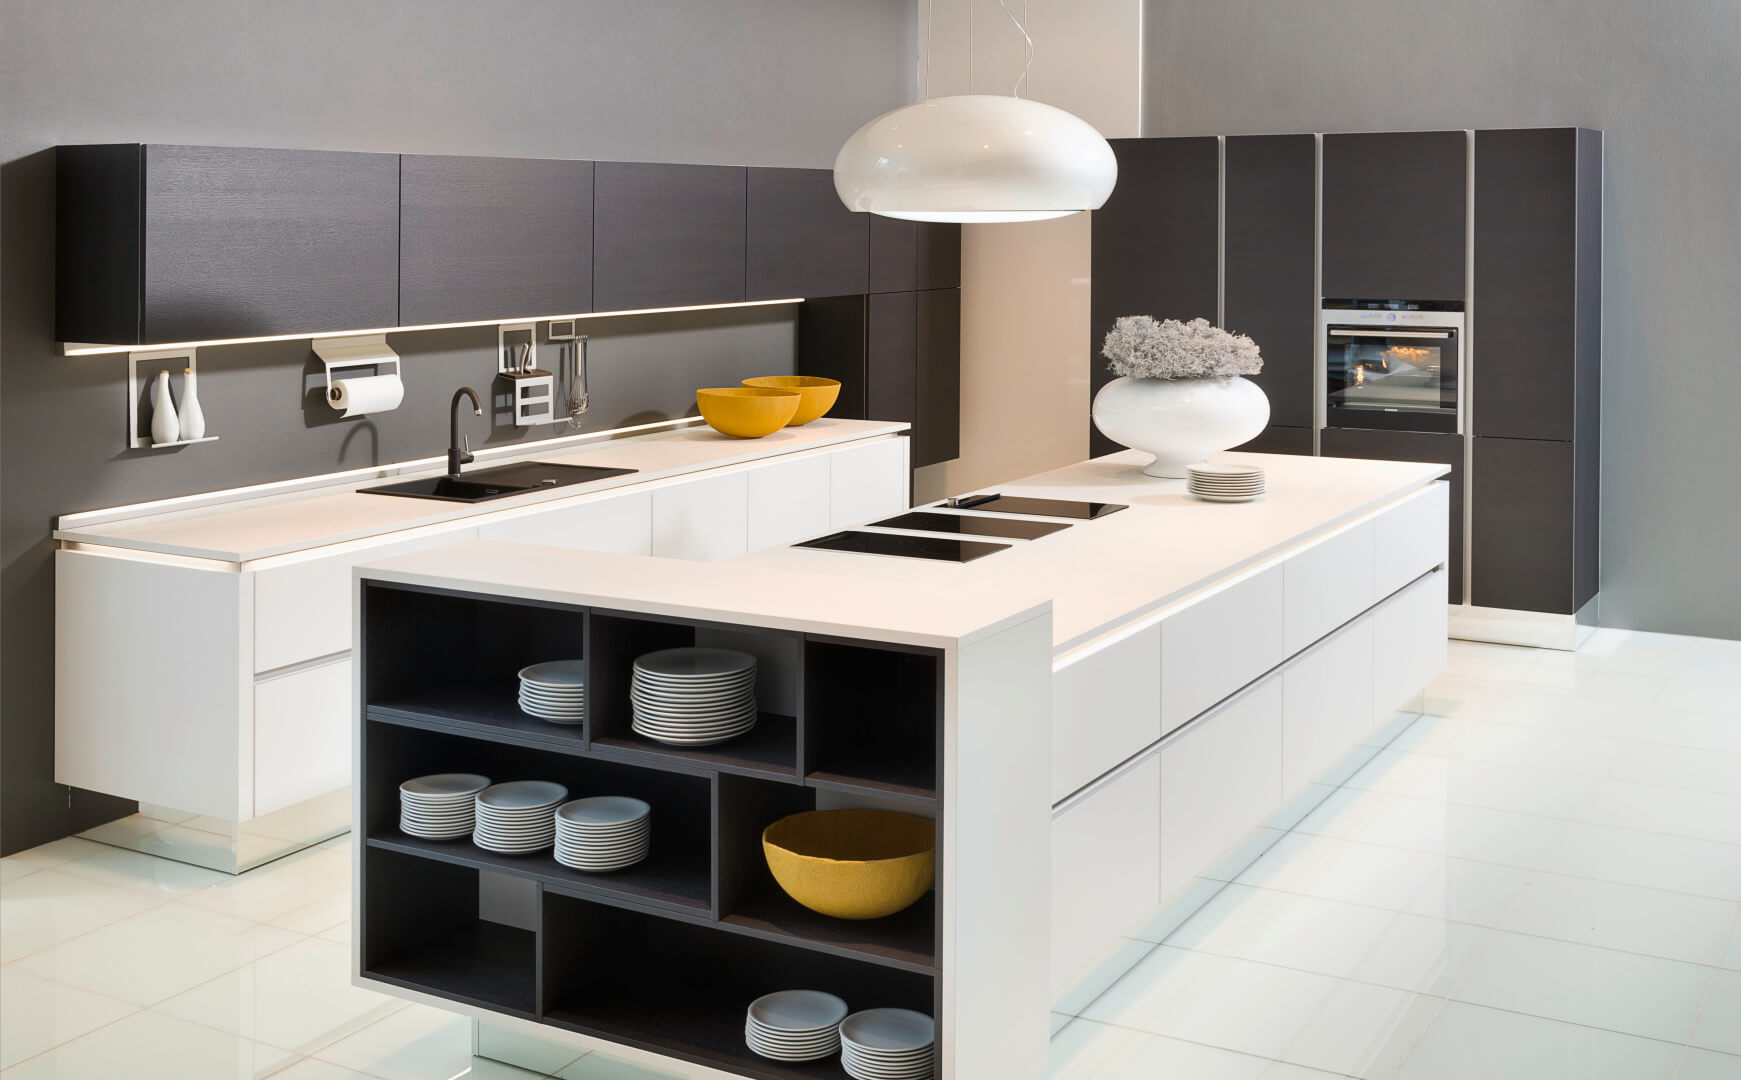 Nolte-Kitchens-Nature-Gallery13